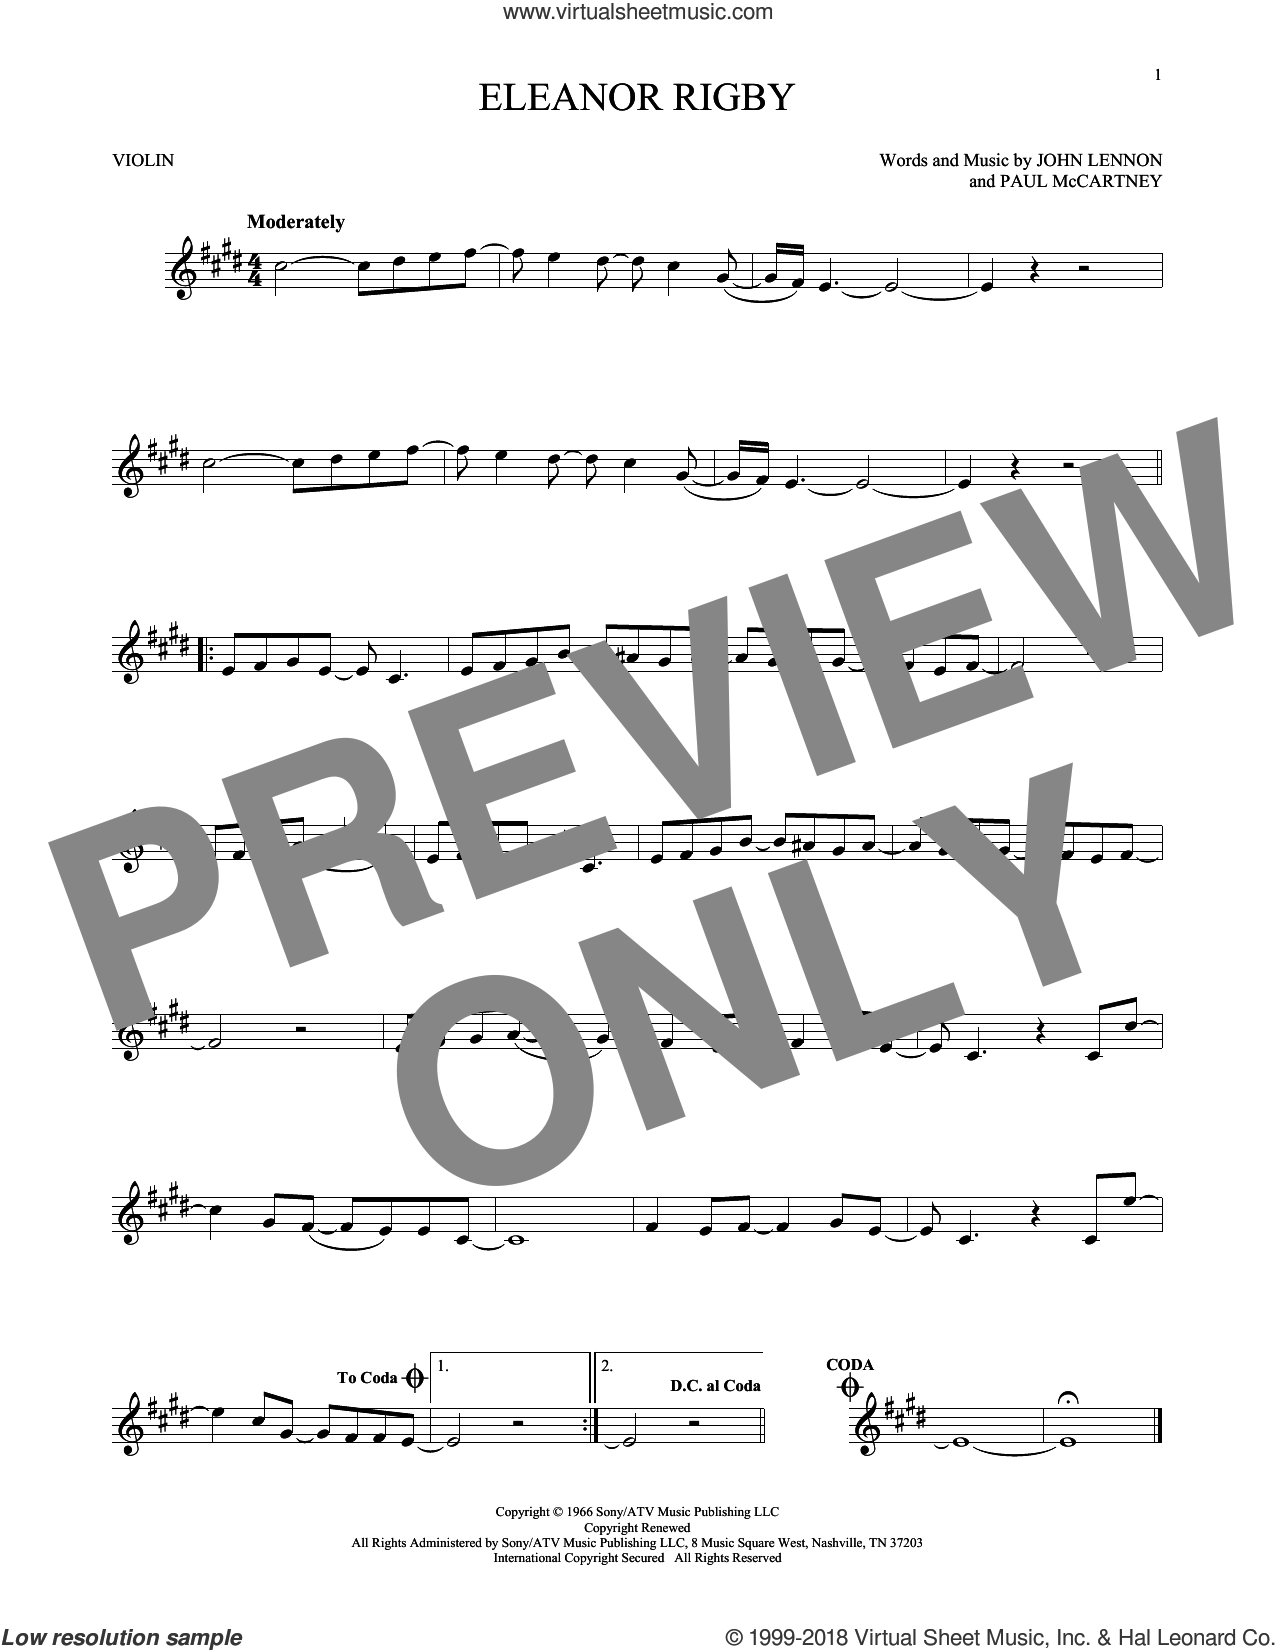 Eleanor Rigby sheet music for violin solo by The Beatles, John Lennon and Paul McCartney, intermediate